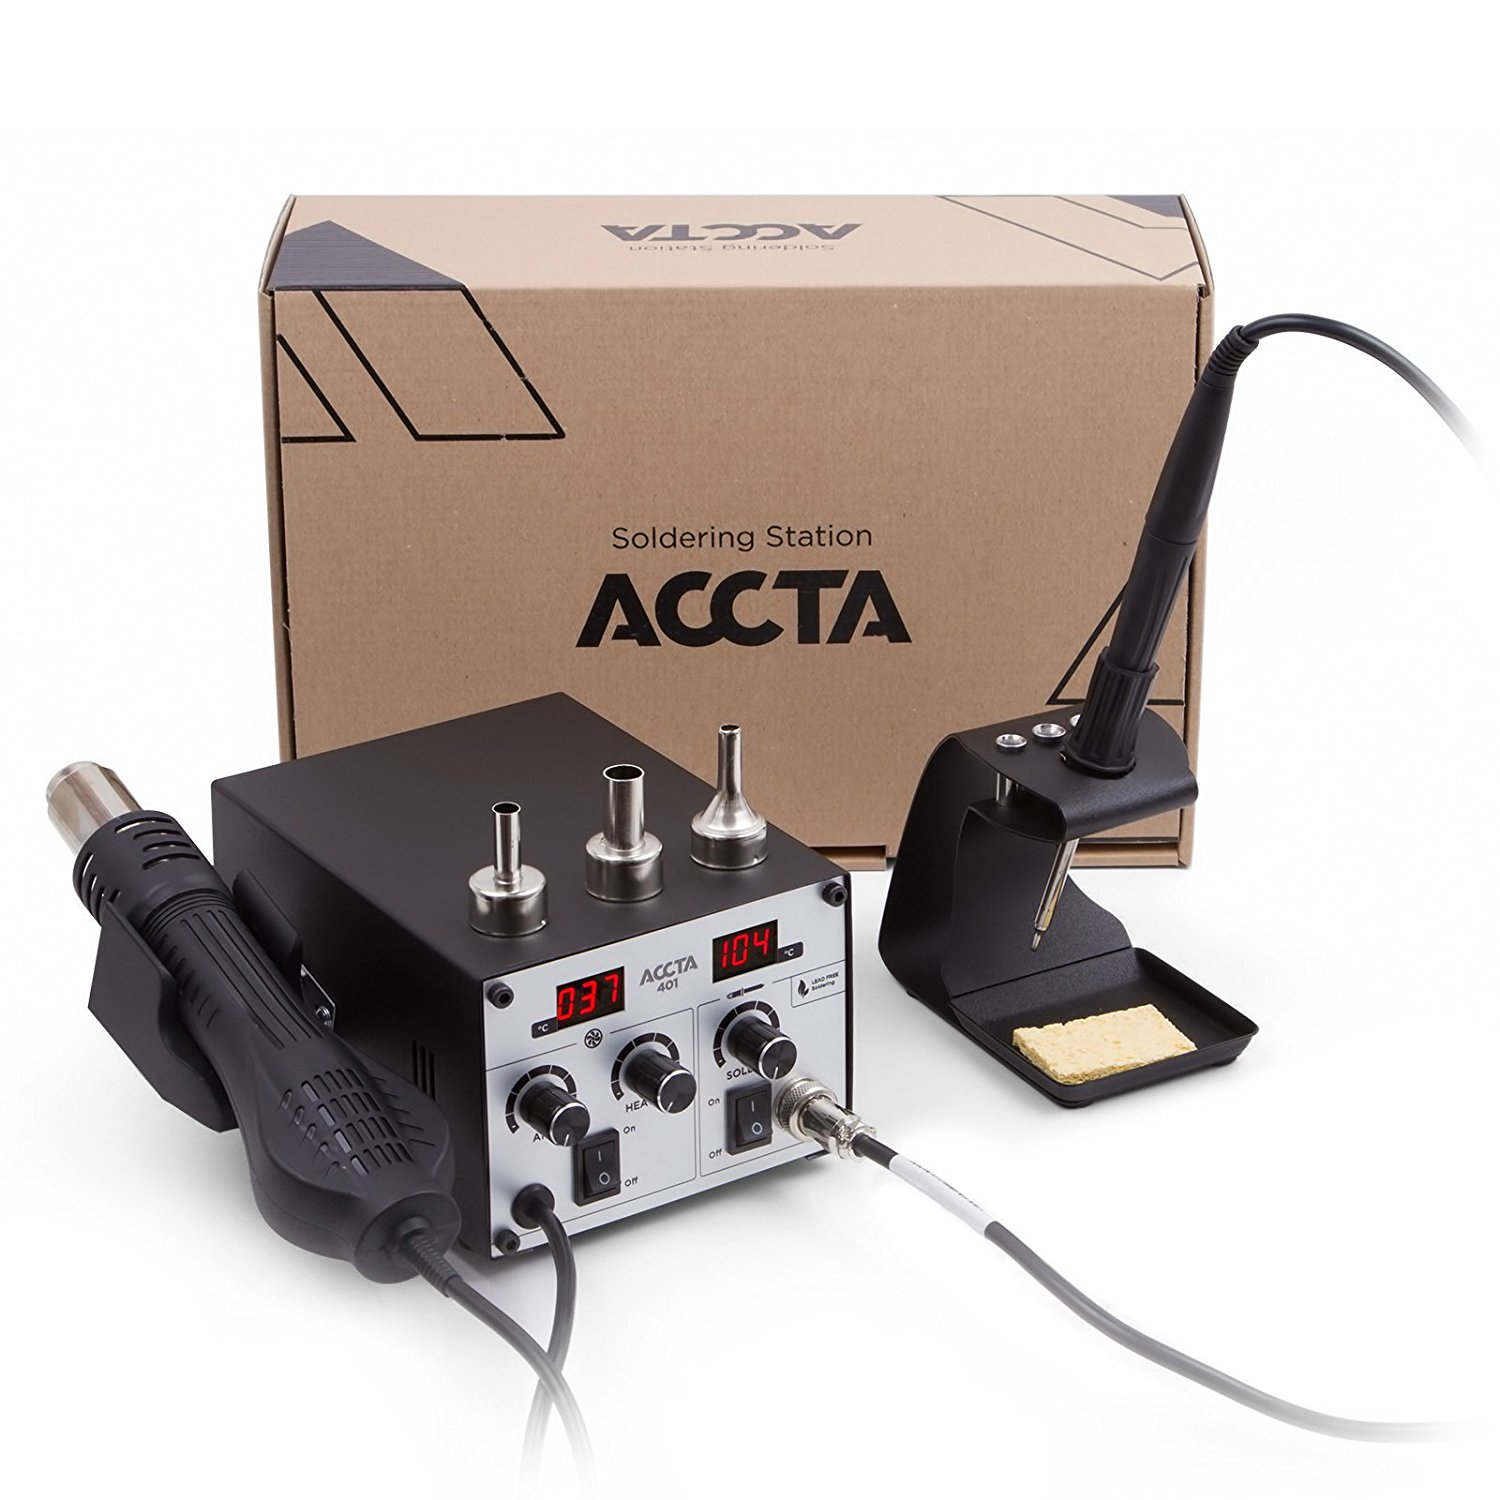 Get Quotations · Accta 401 Hot Air Rework Station Soldering Iron Hot Air  Gun 450 W 220 V with